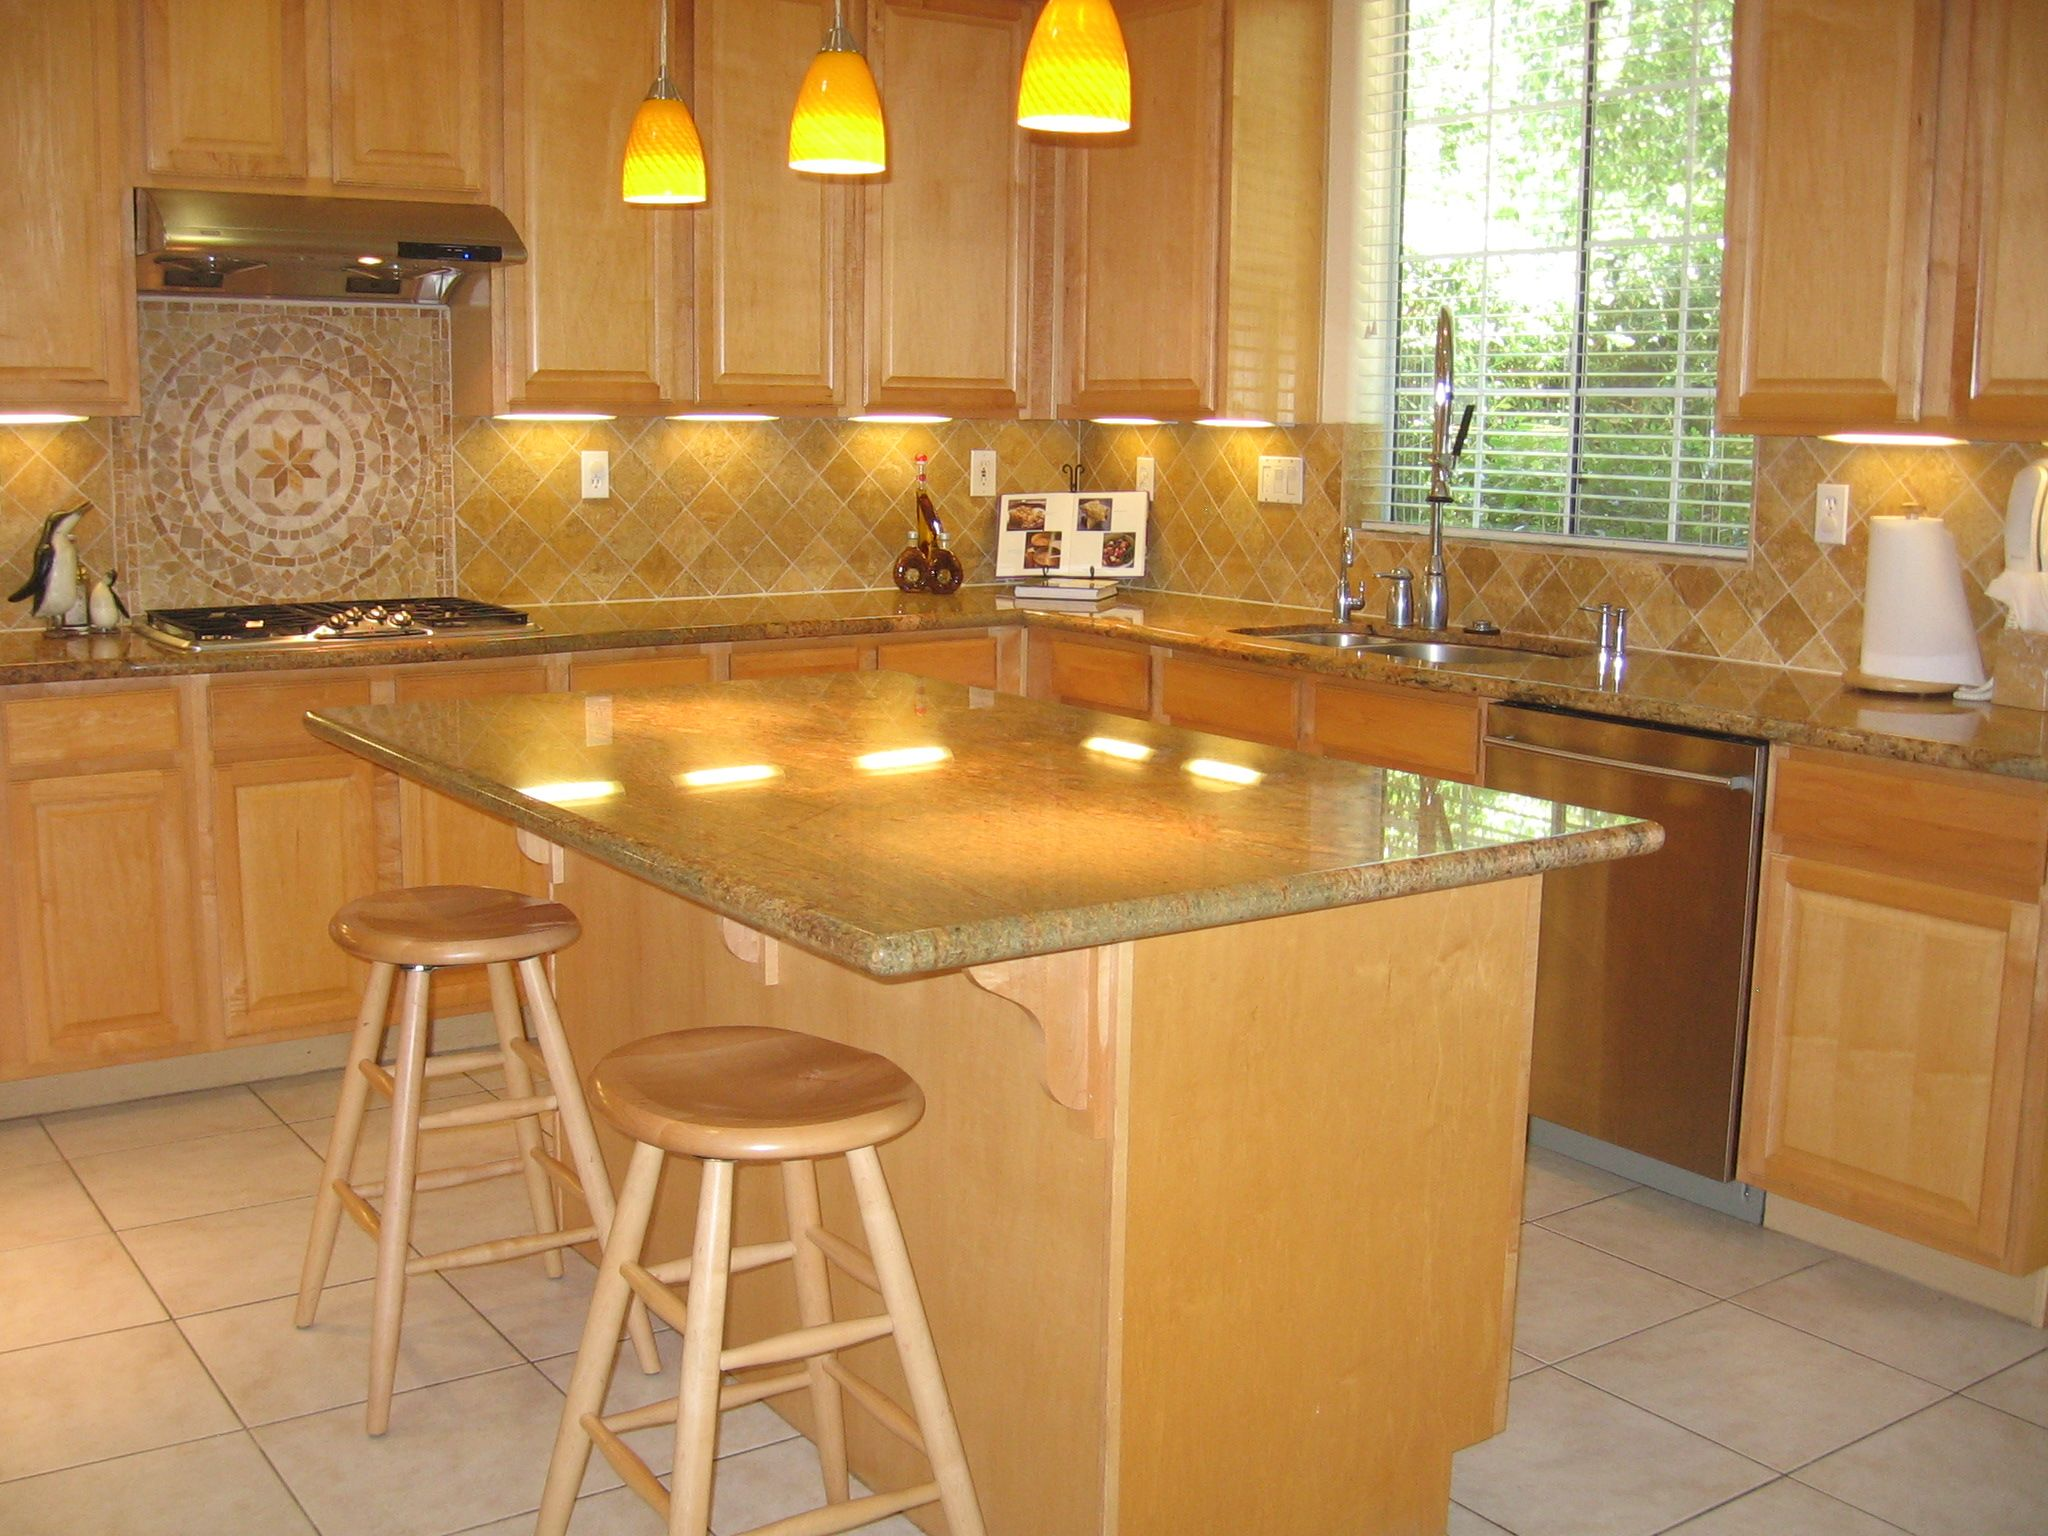 Maple Kitchen Cabinets With Marble Countertops Best Backsplashes For Granite Countertops Island